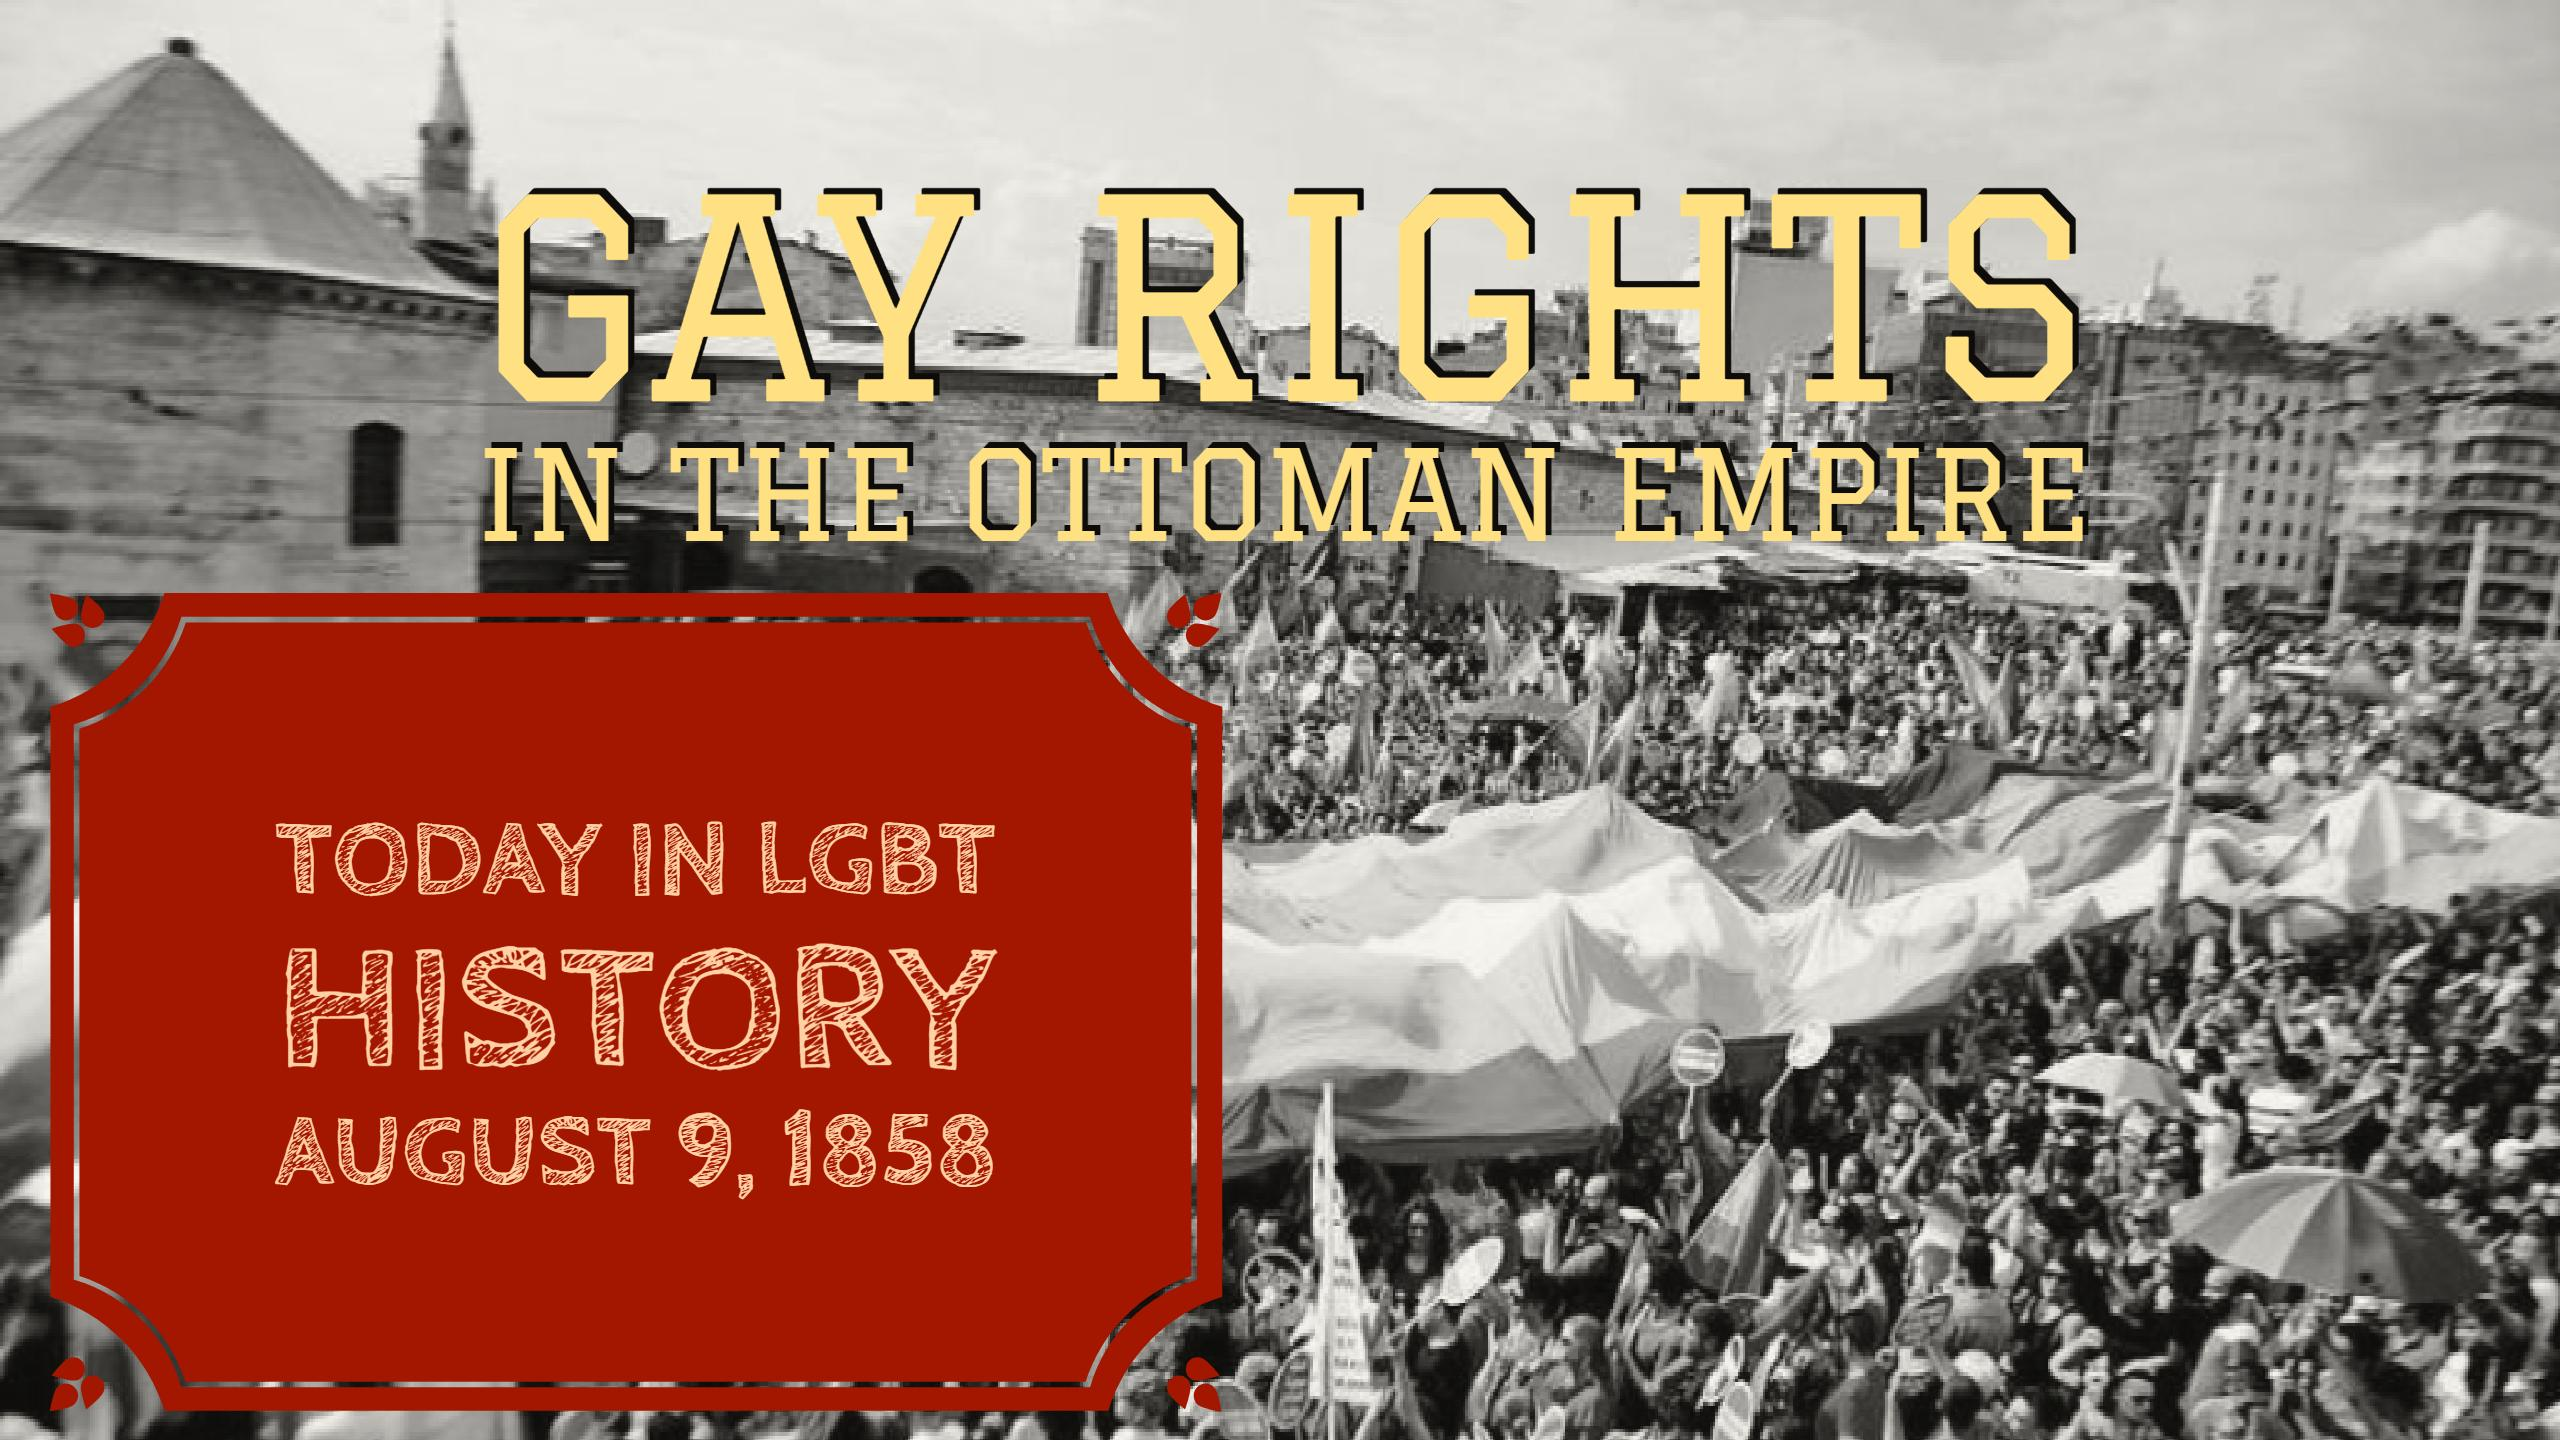 The surprising decriminalization of homosexuality in the Ottoman Emire